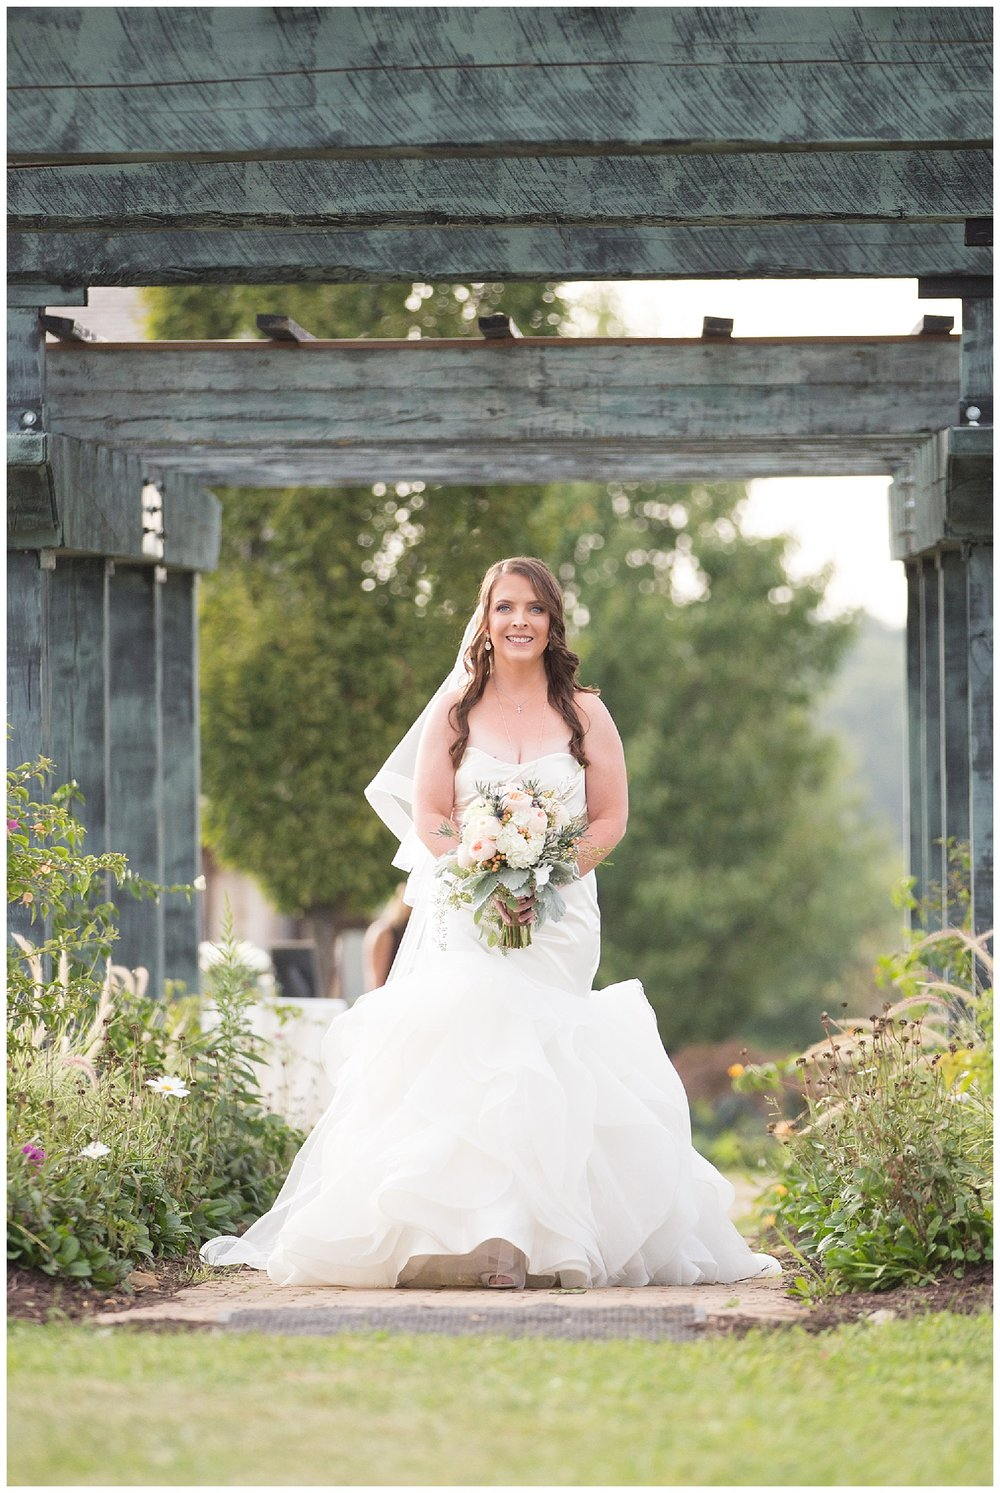 Pennsylvania Farm Wedding | Rich Farms Nursery | Smithtown, PA | www.redoakweddings.com